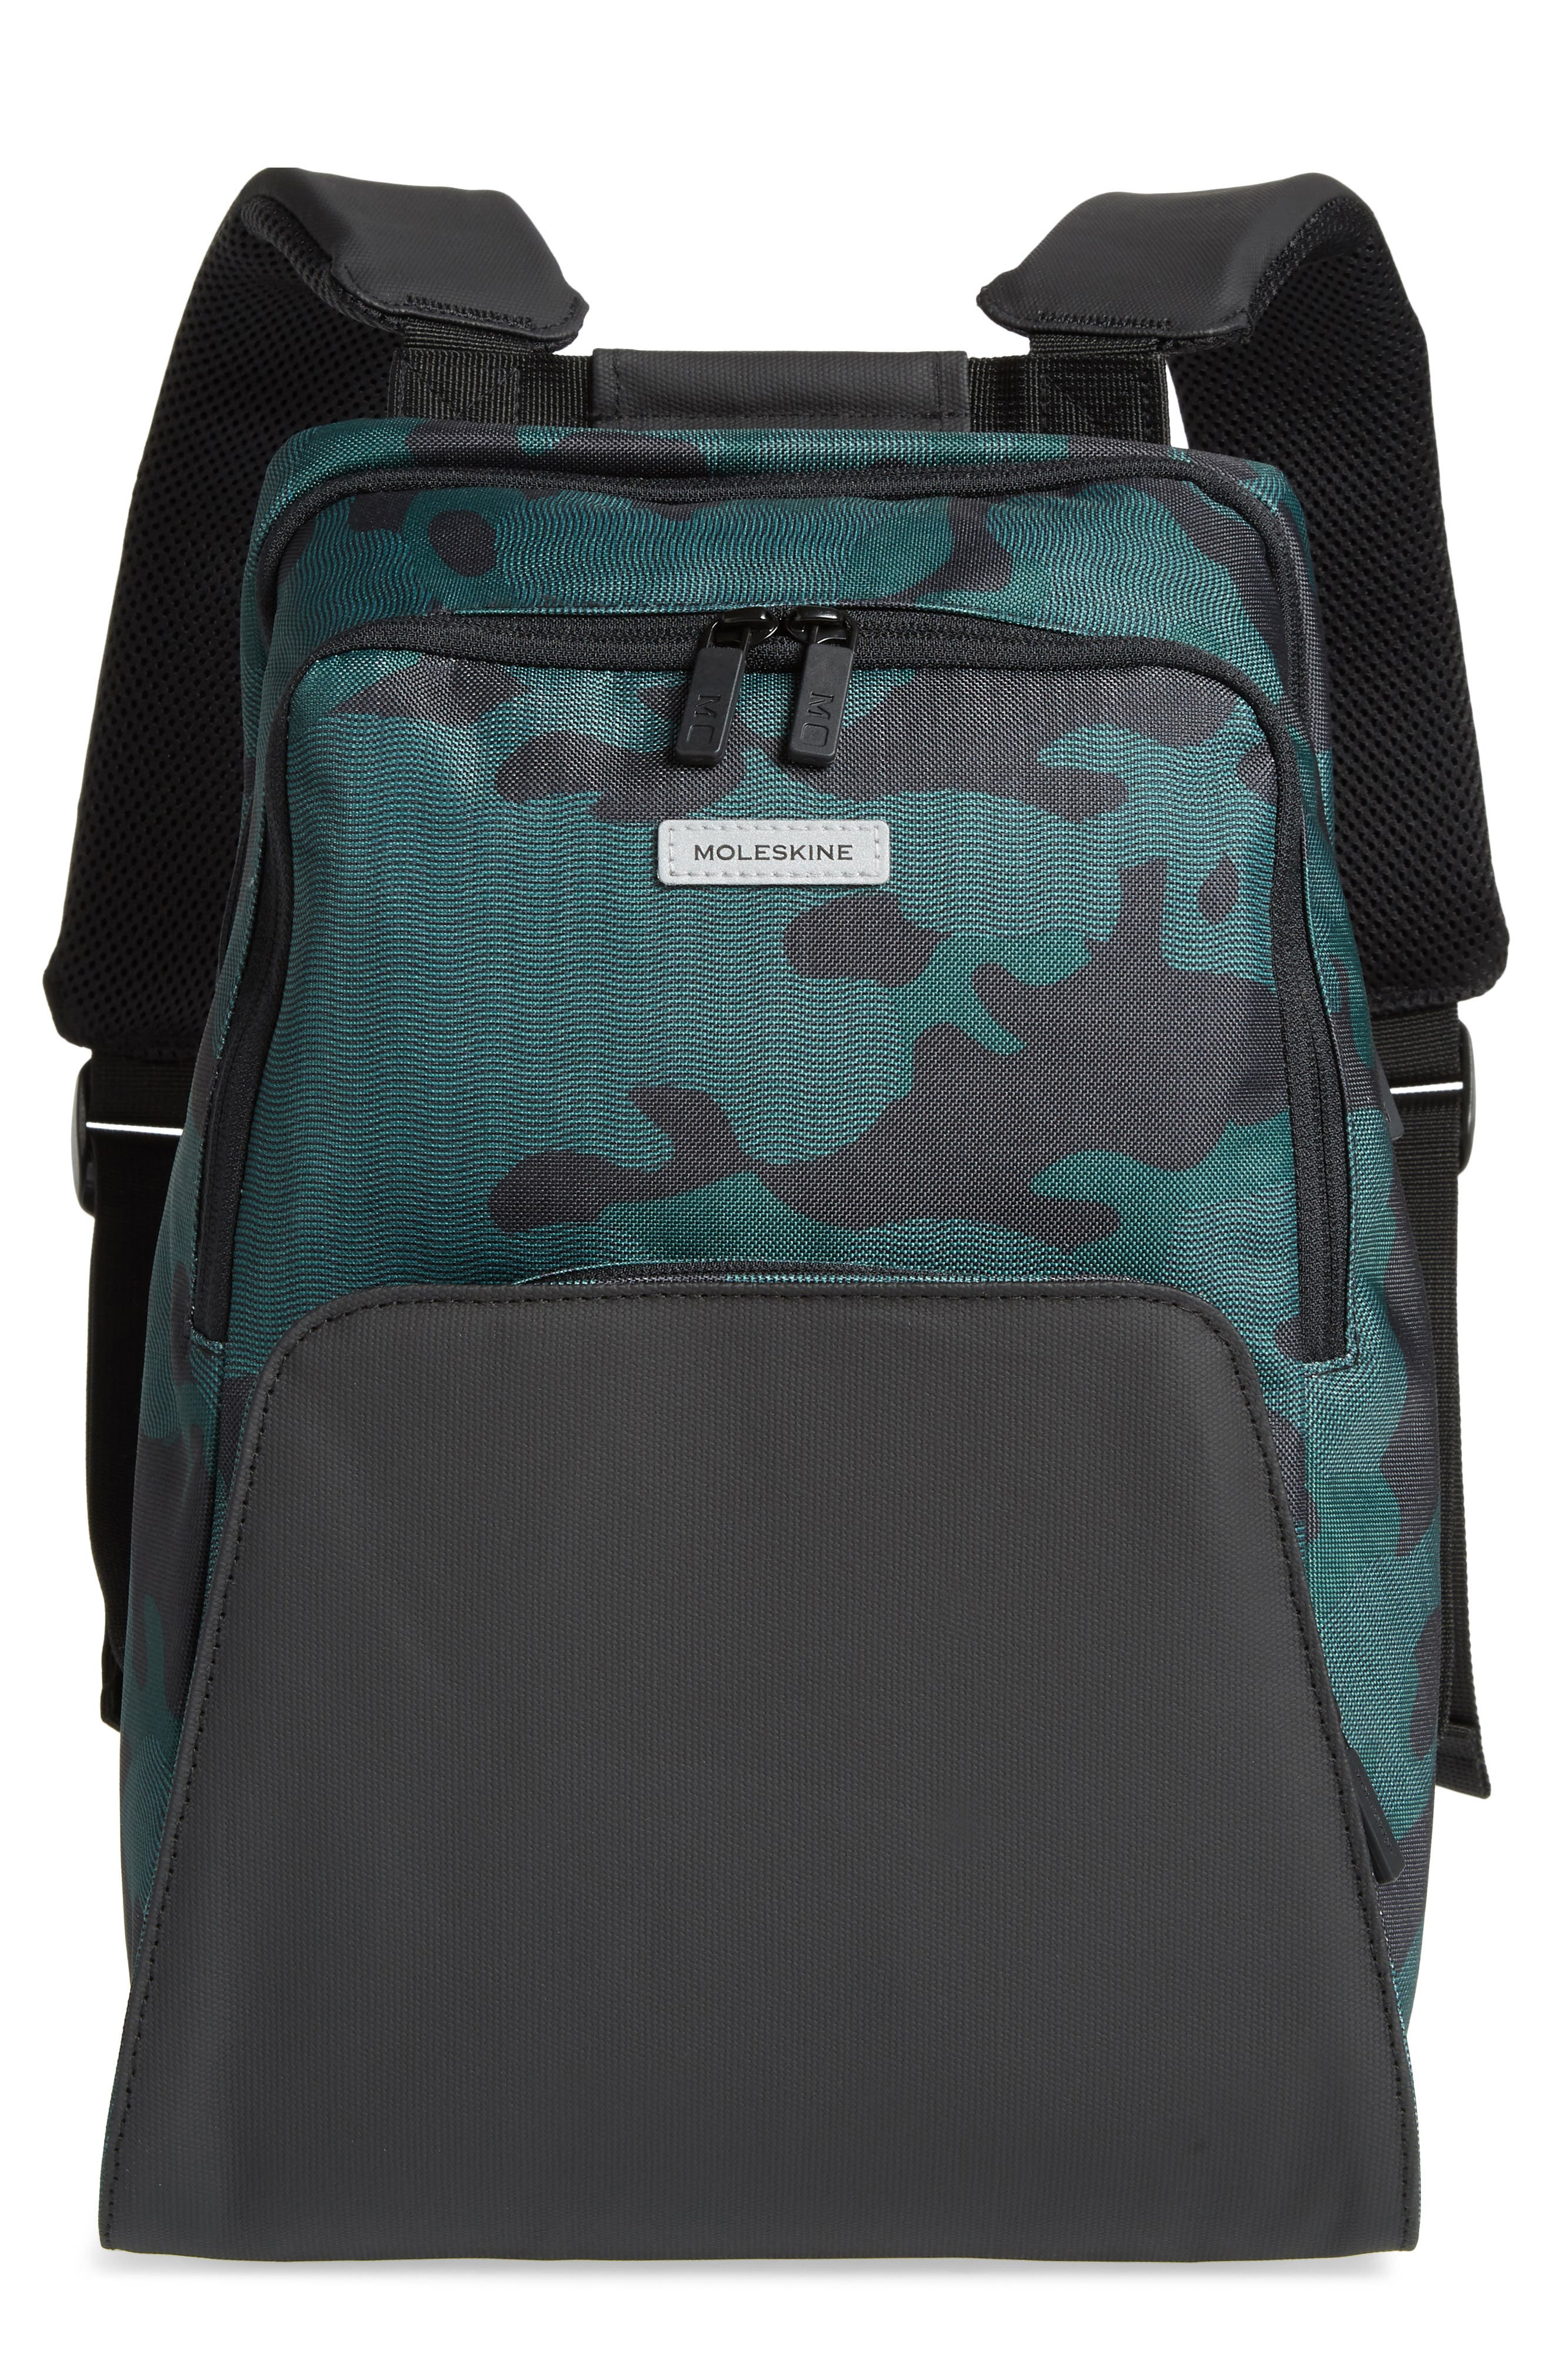 Nomad Water Resistant Backpack,                         Main,                         color, CAMO GREEN